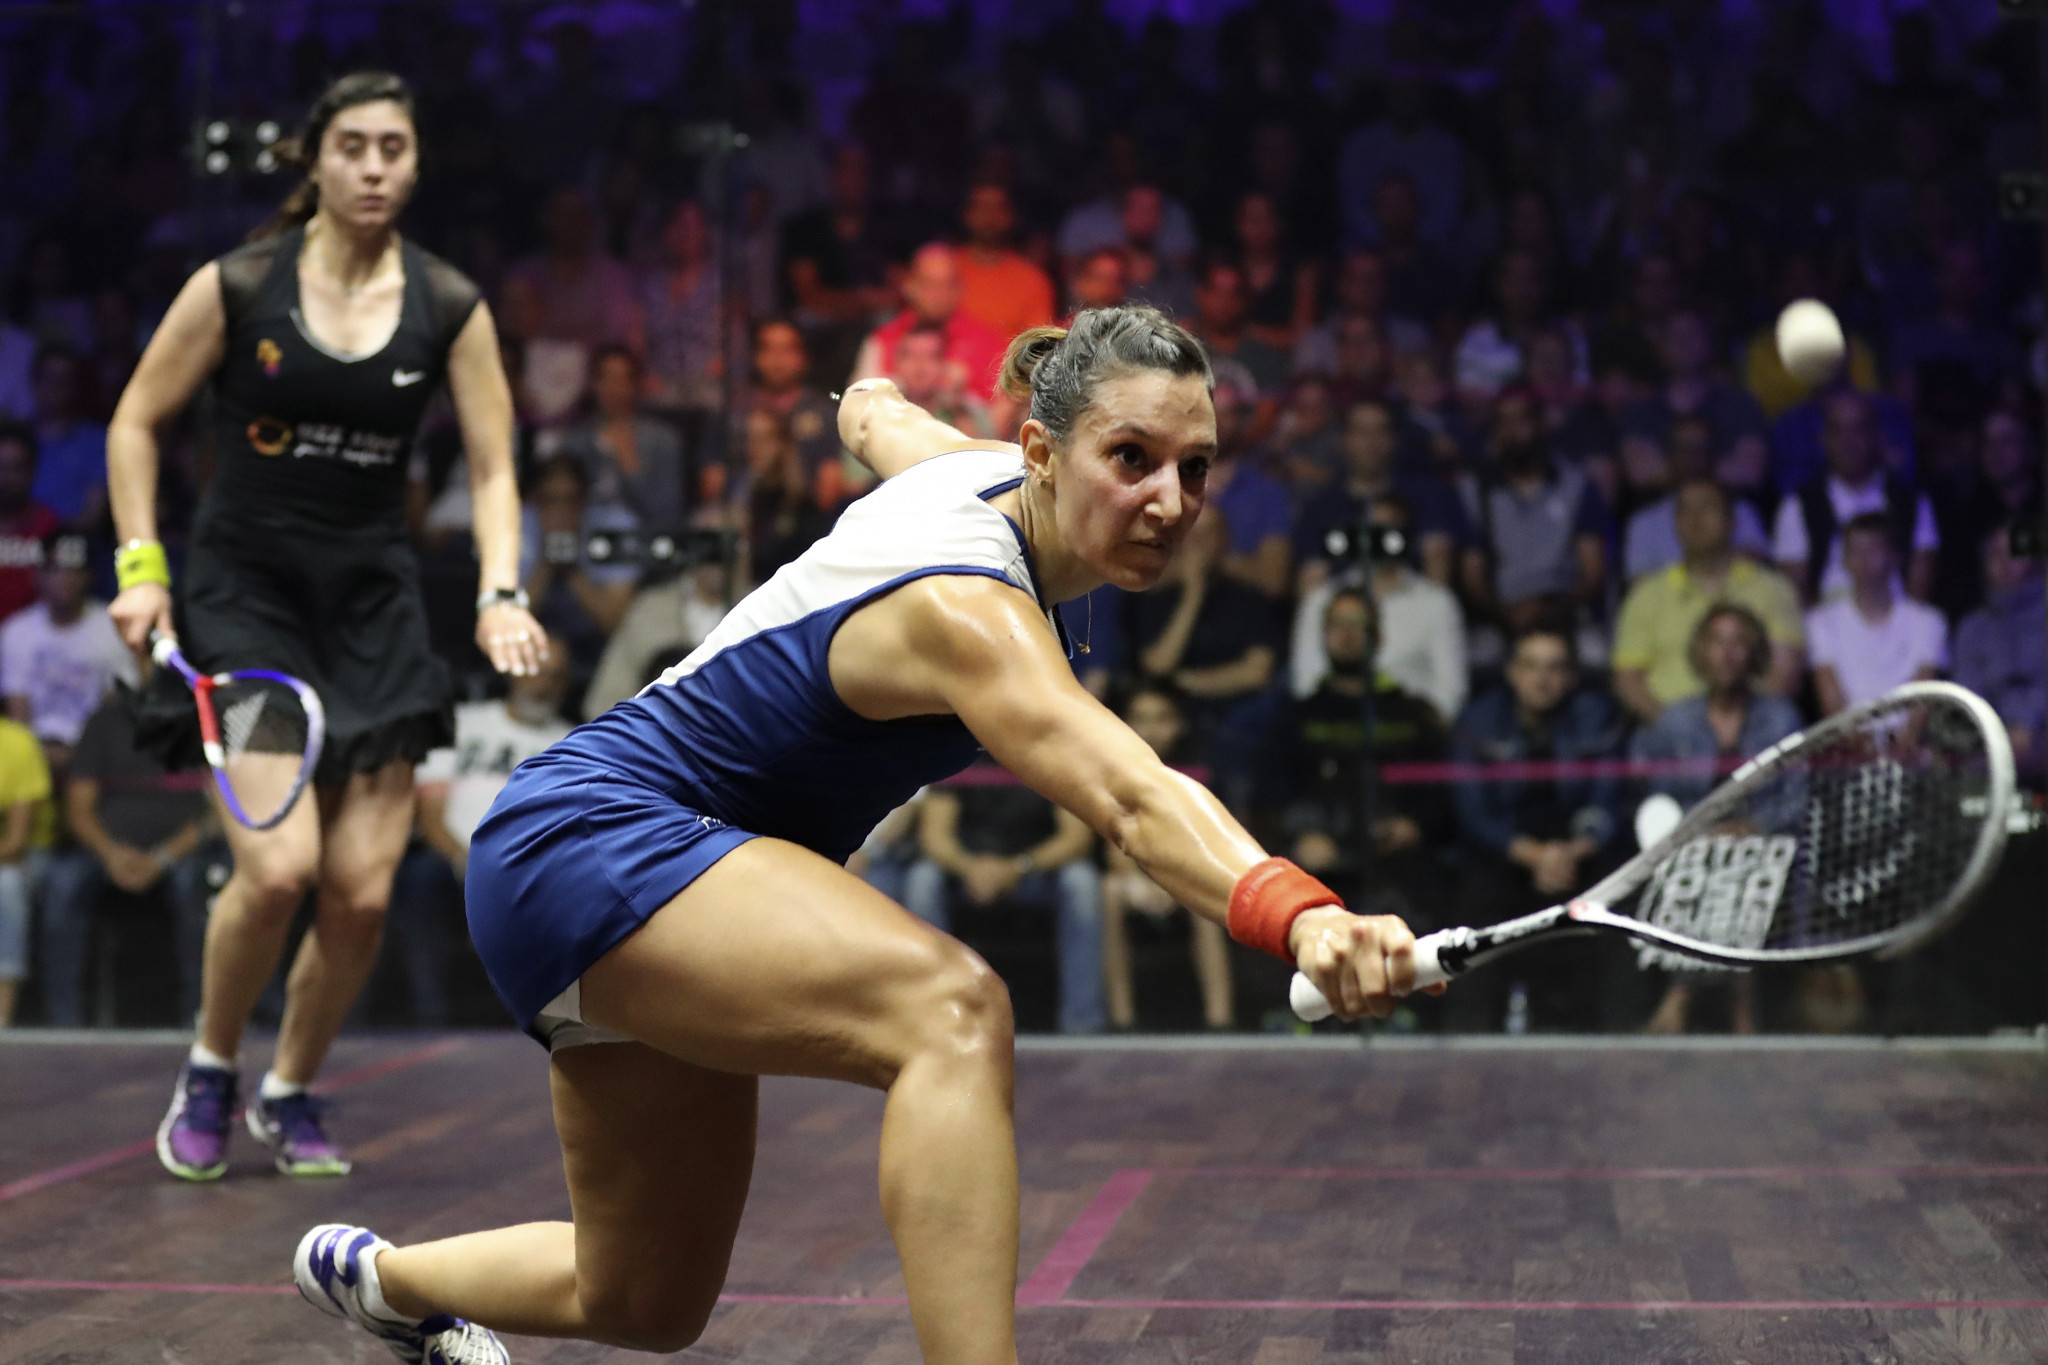 Defending champion King knocked out by Serme at PSA Manchester Open